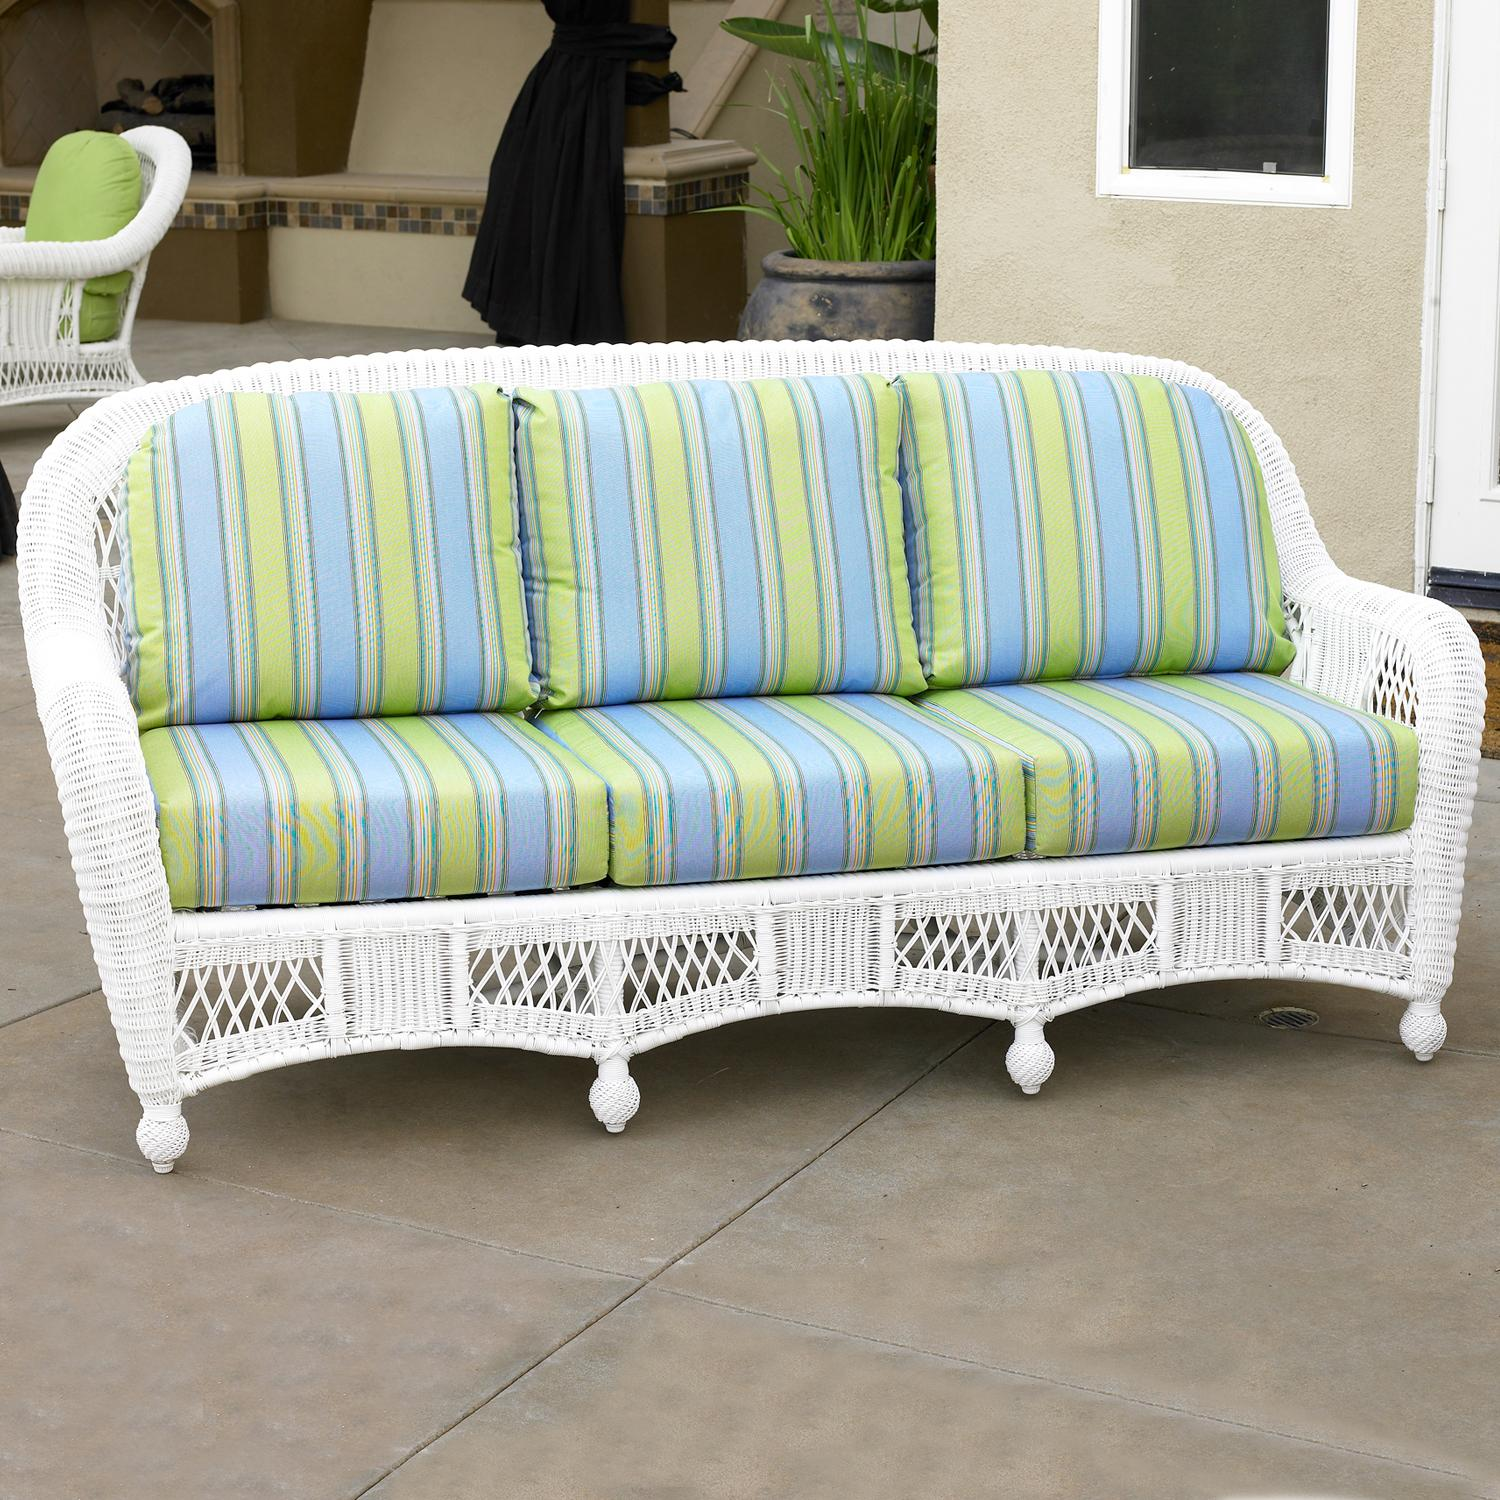 St Lucia Woven Premium Deep Seat Upholstered Outdoor 3 Seat Sofa By  NorthCape International